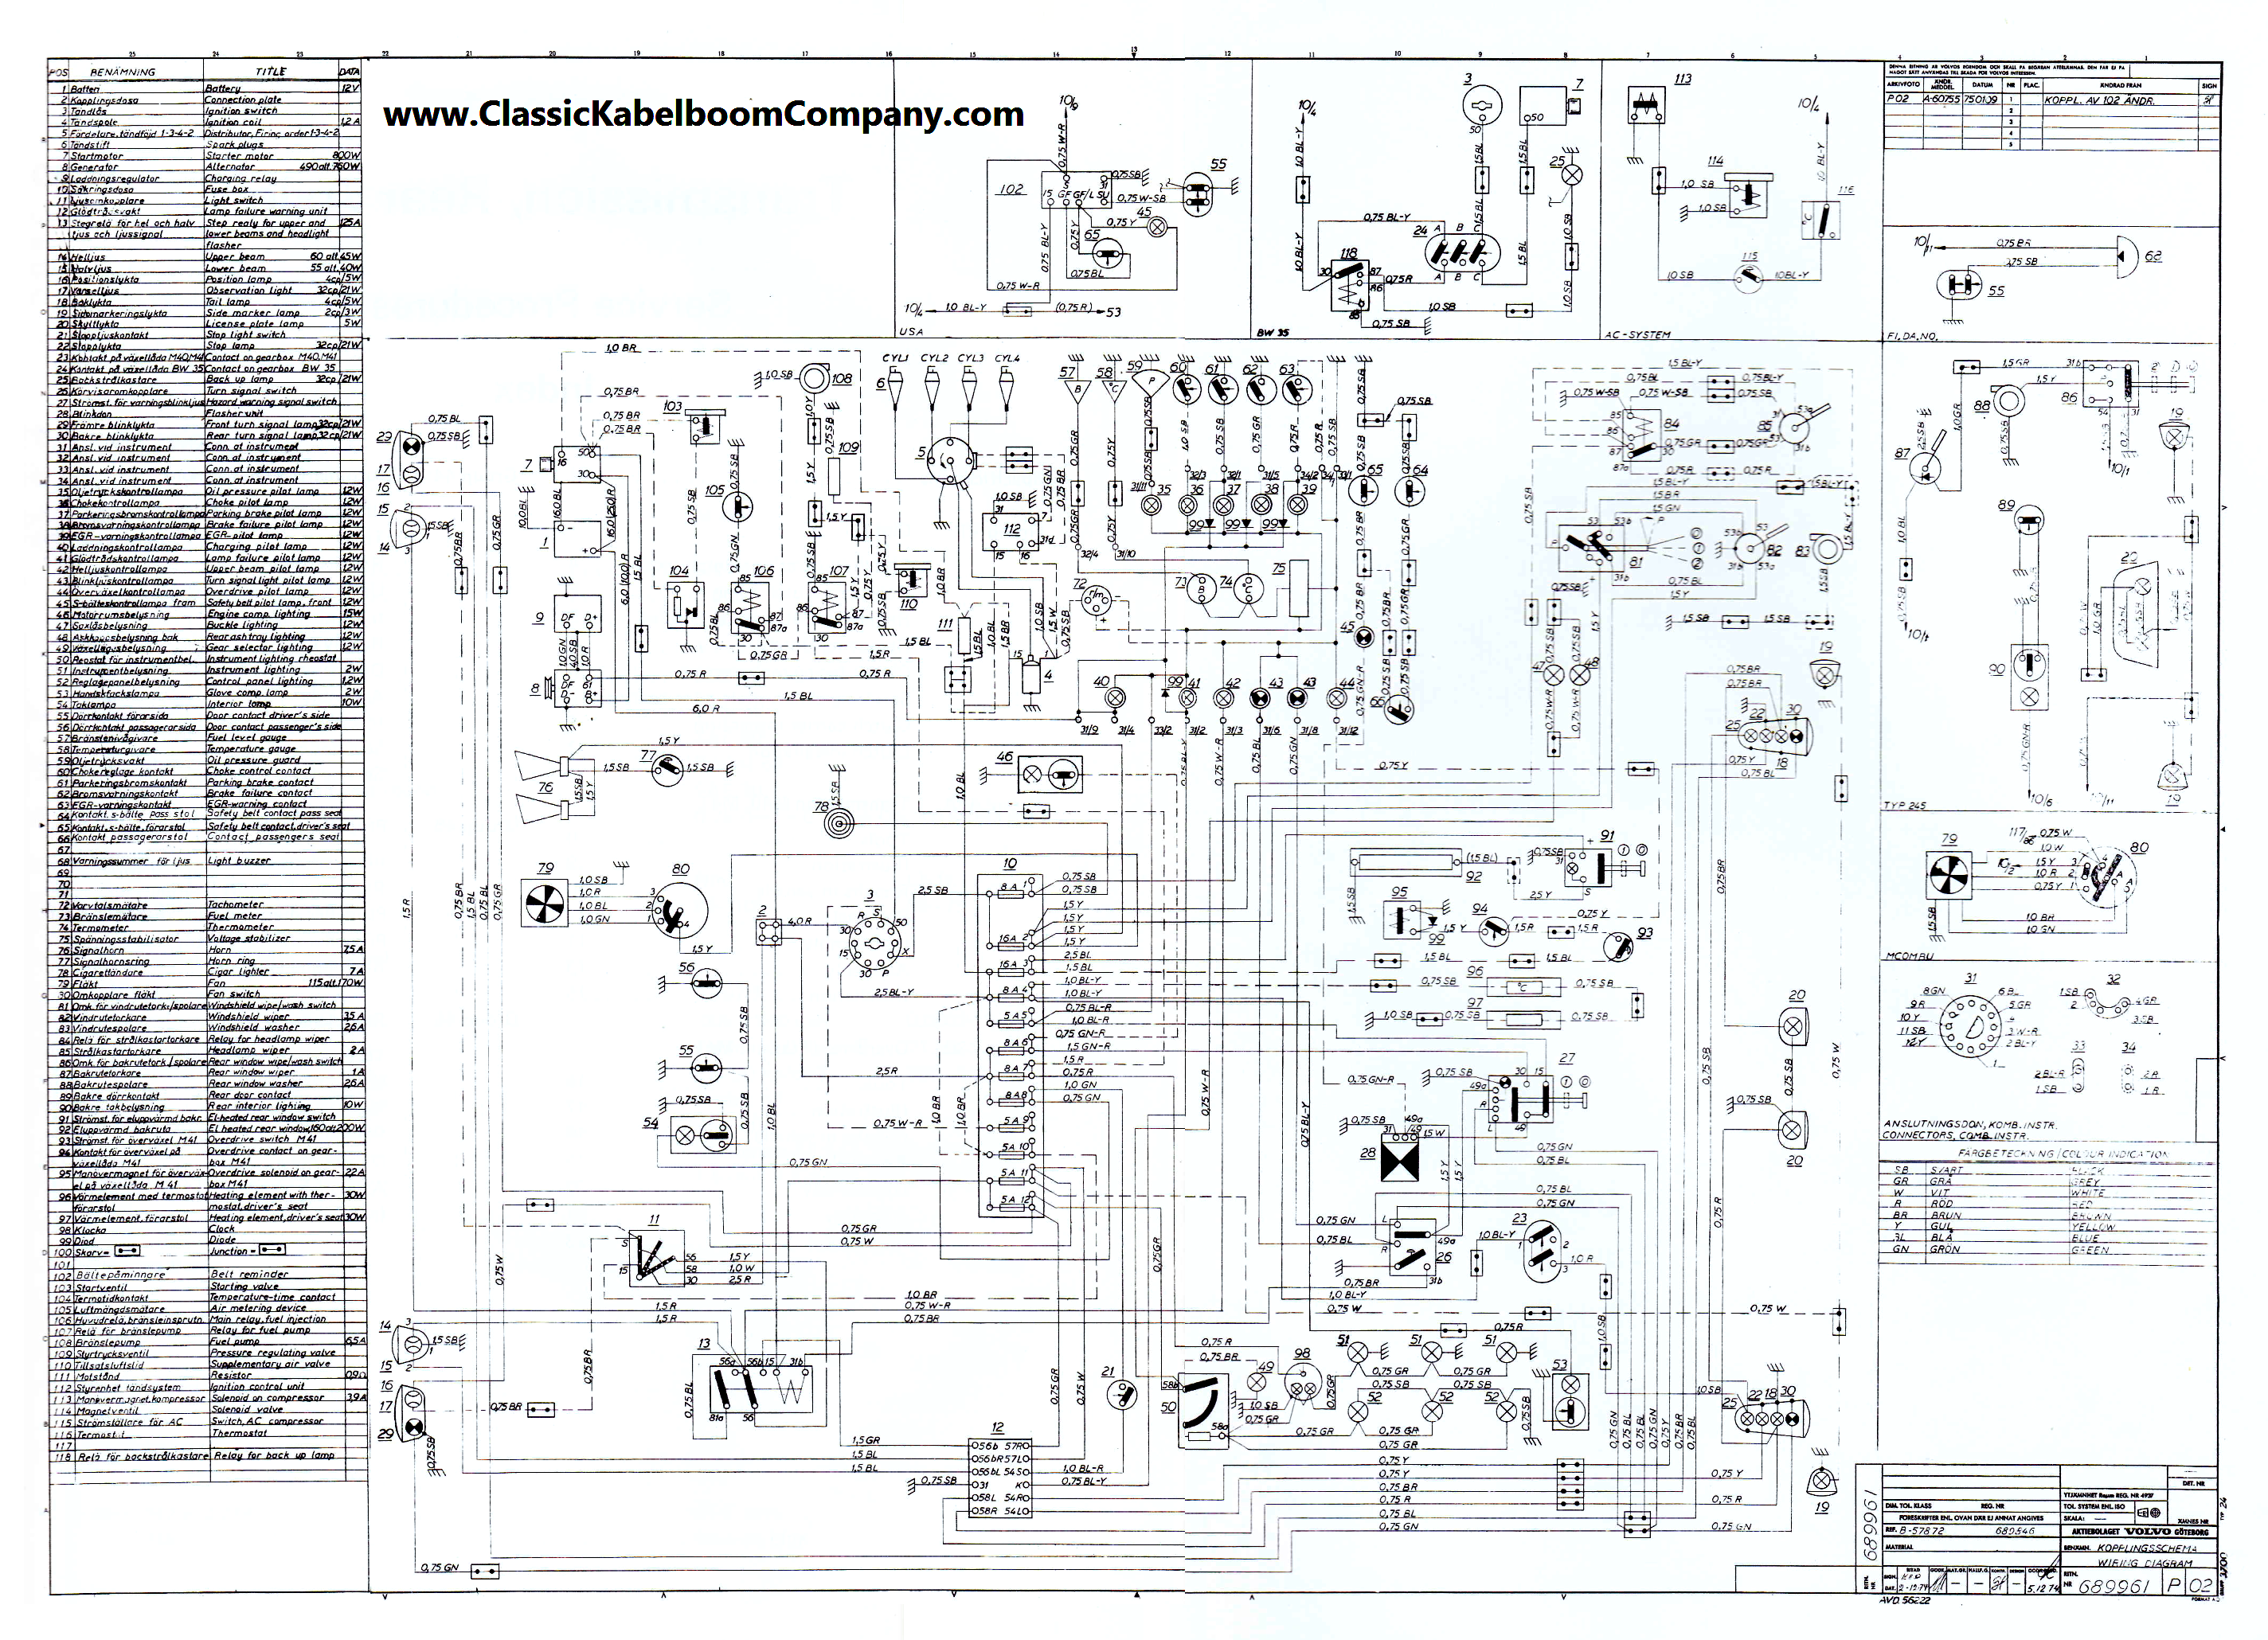 vol40?cdp=a classic kabelboom company elektrisch bedrading schema volvo 92 Volvo 240 Fuse Box at cos-gaming.co